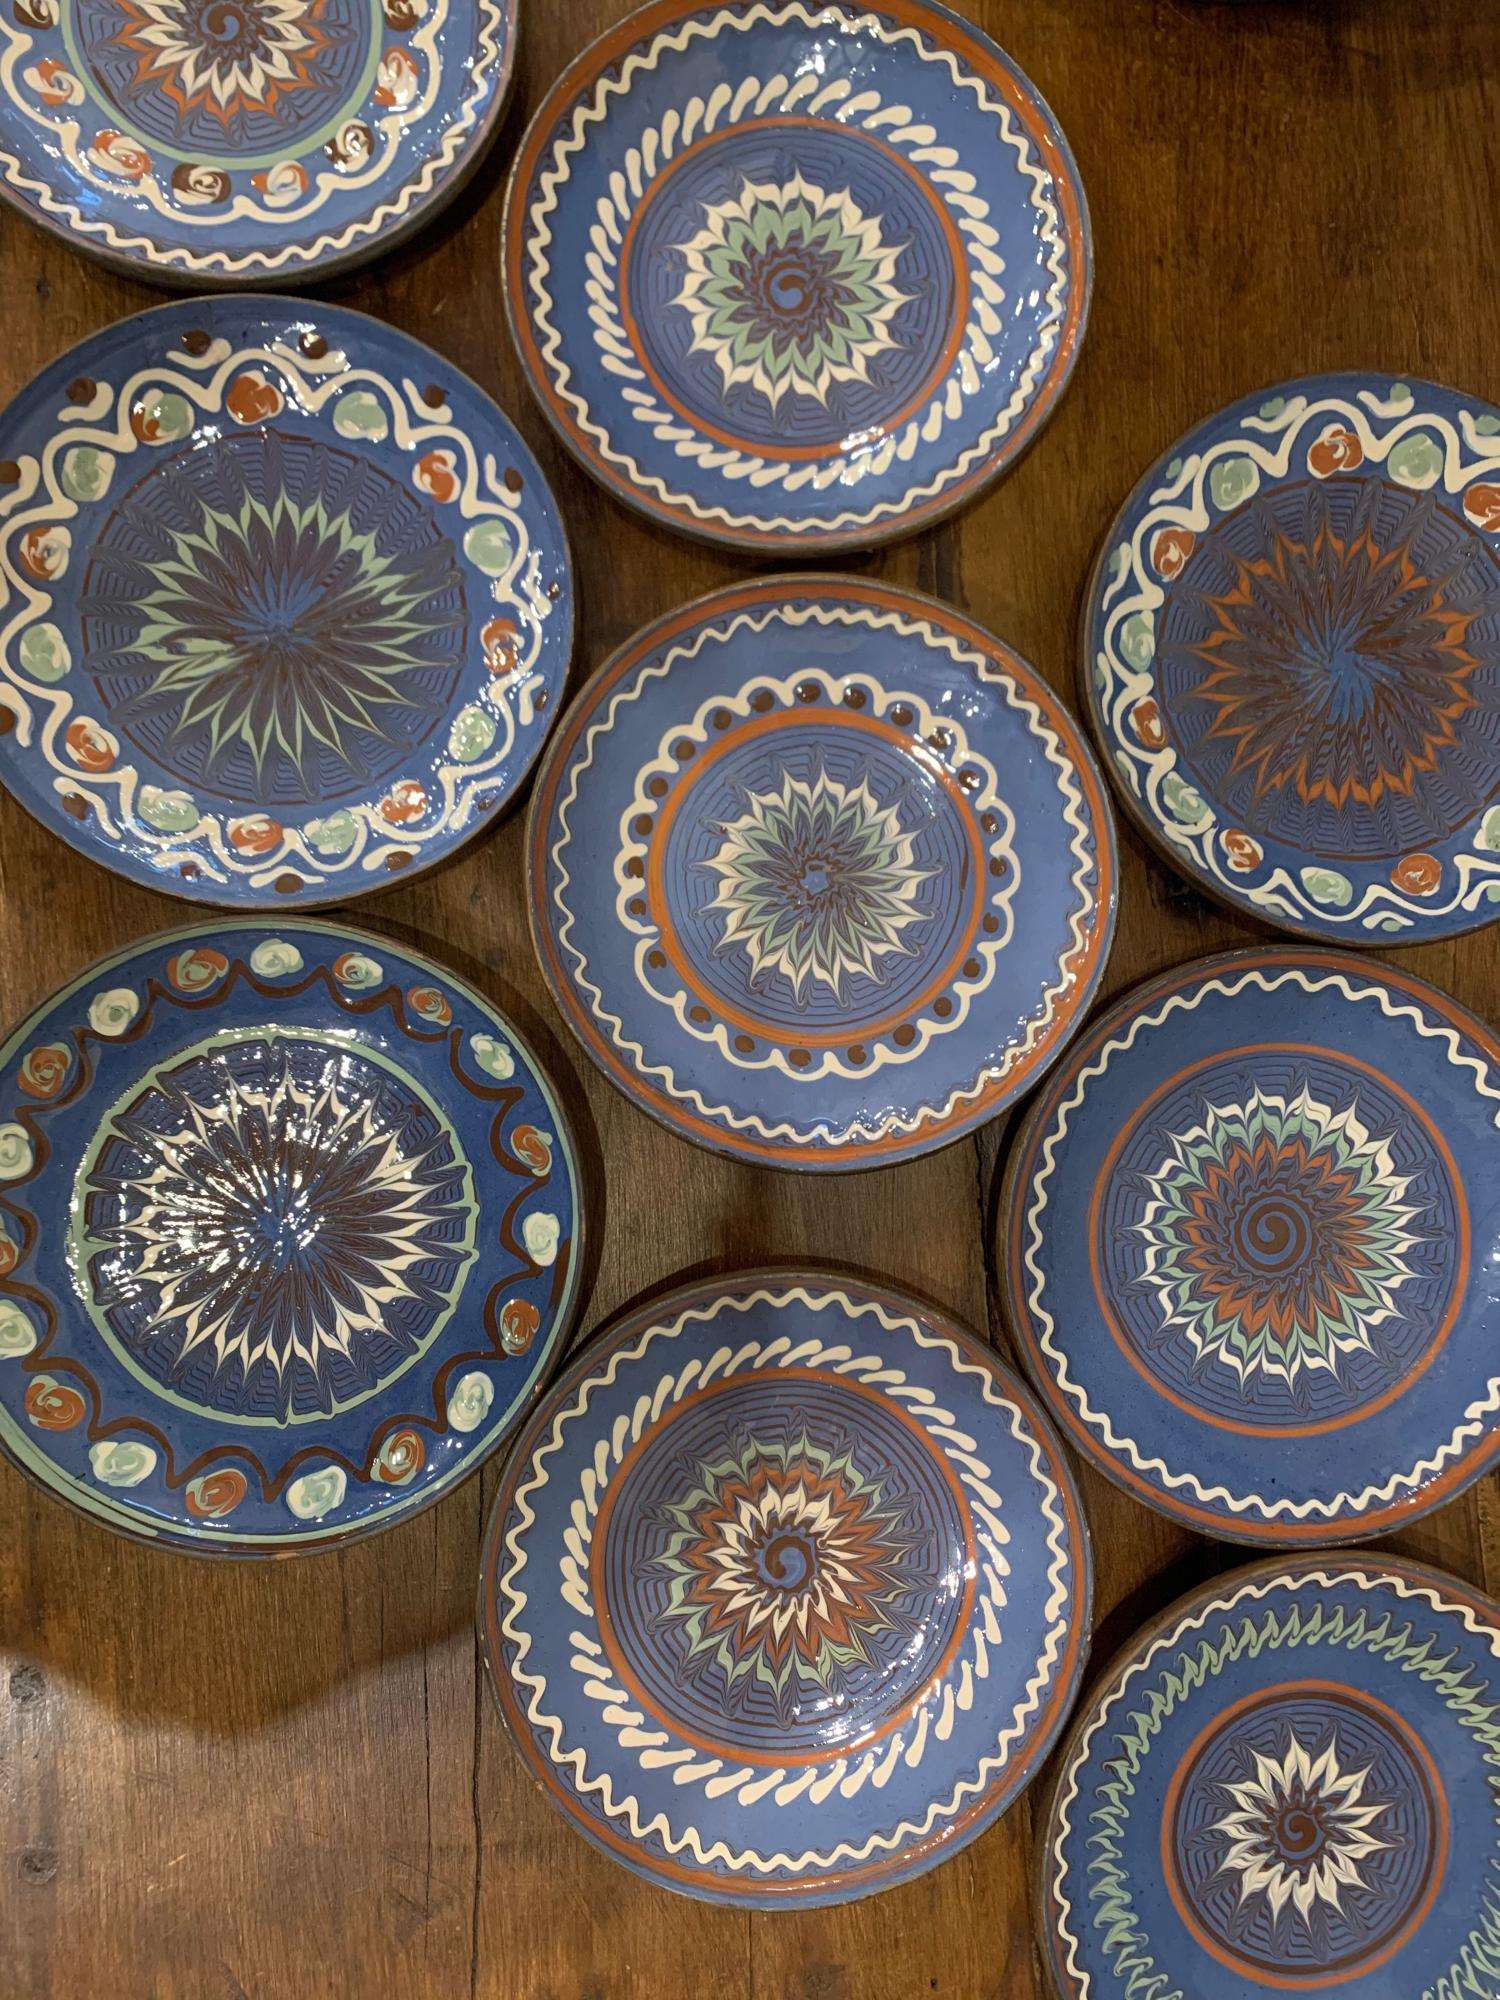 A set of 10 Romanian hand decorated plates